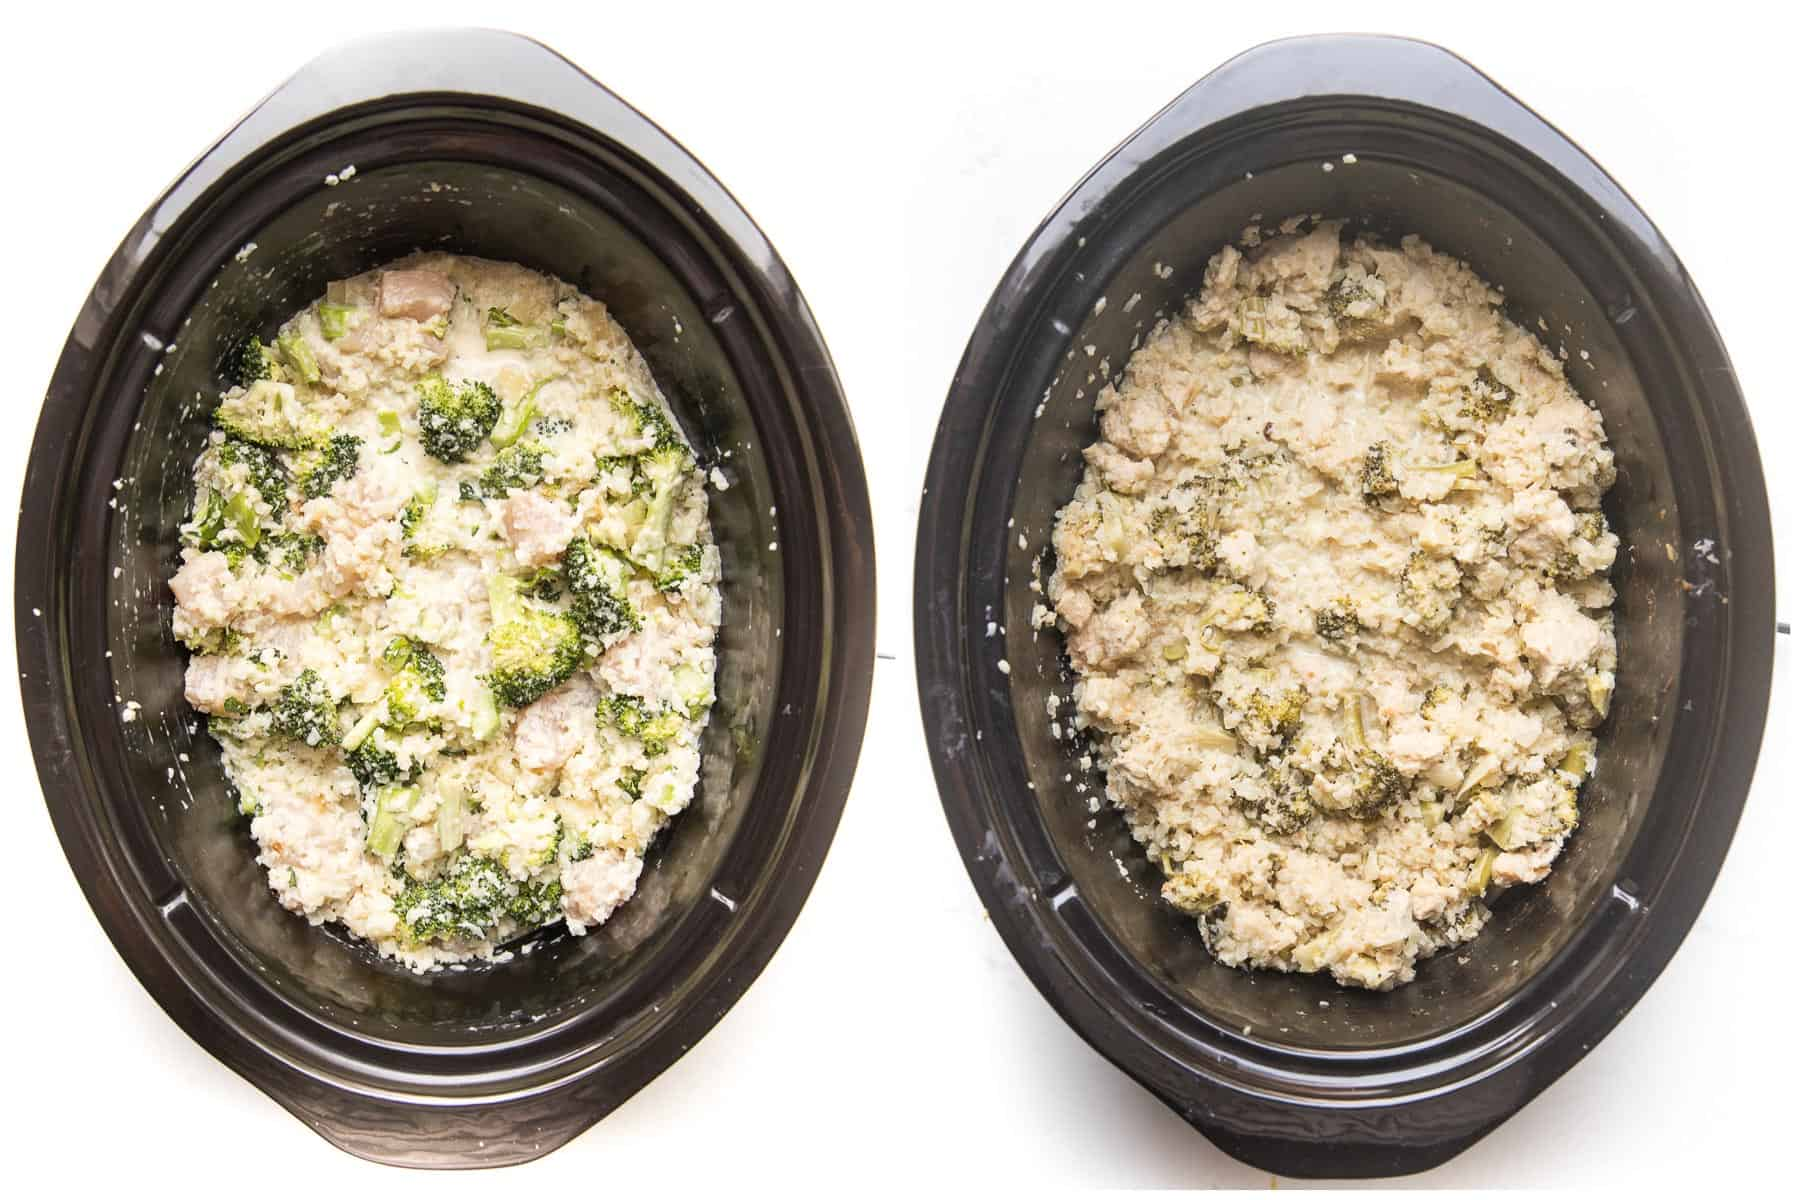 slow cooker KETO broccoli chicken cauliflower rice casserole before and after cooking